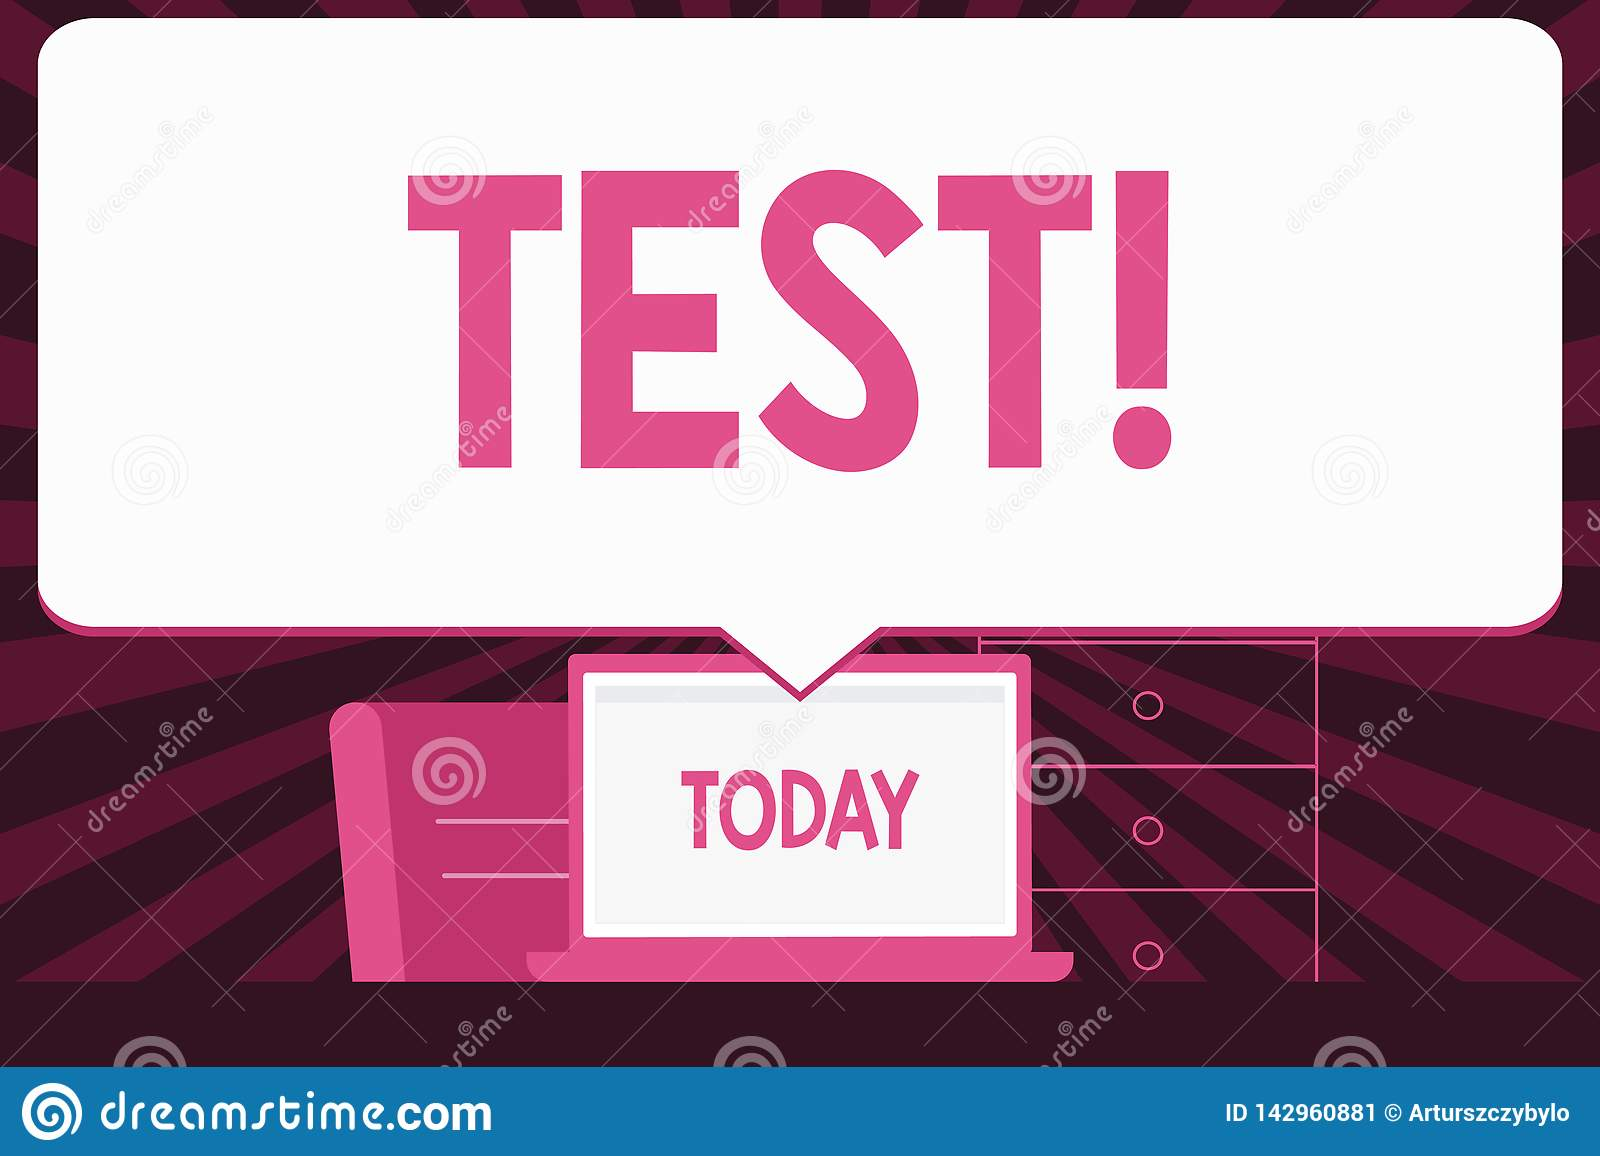 Text sign showing Test. Conceptual photo Academic systemic procedure assess reliability durability proficiency Blank